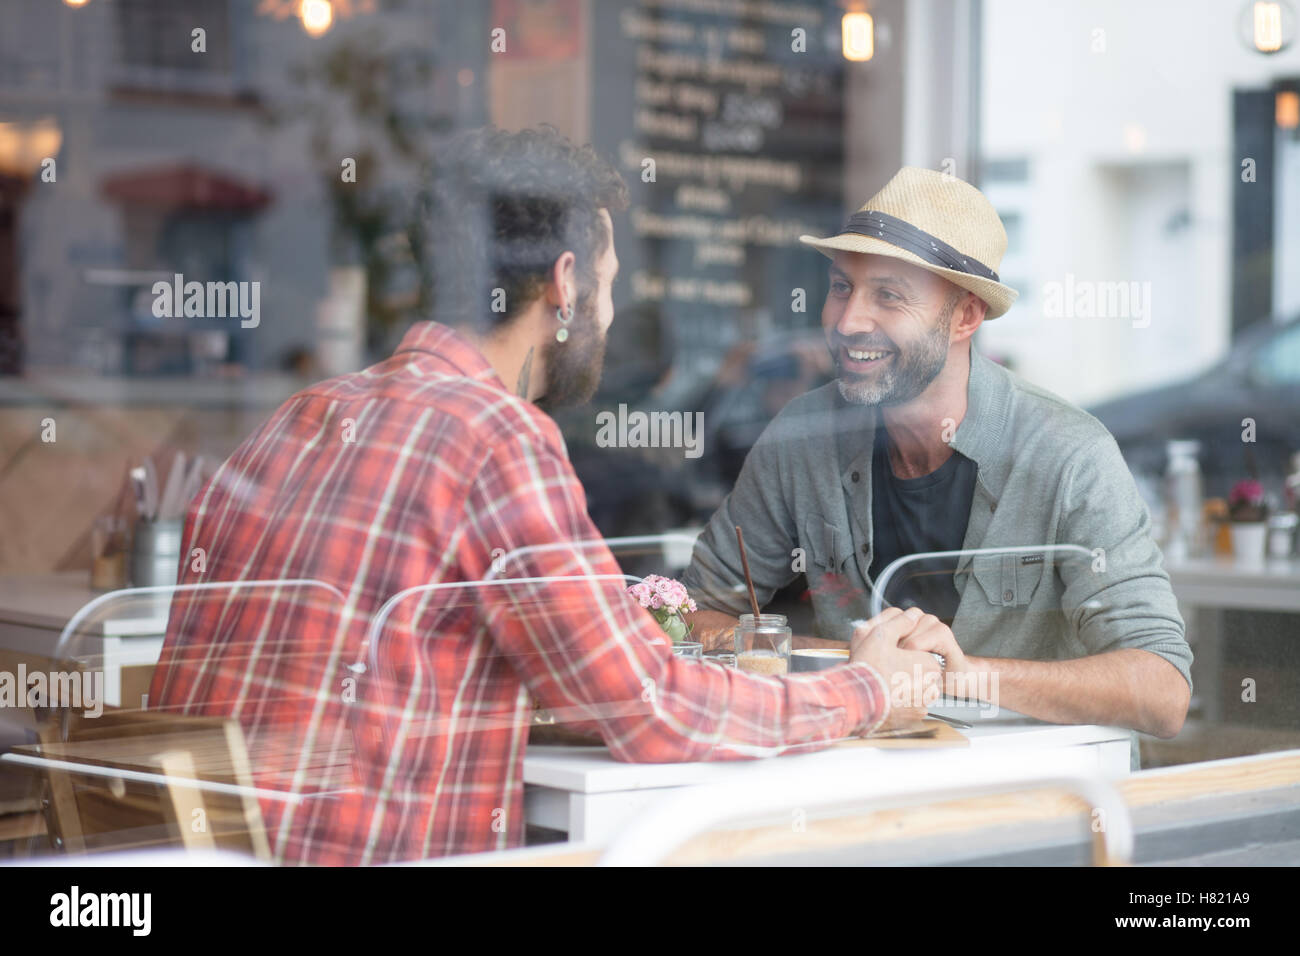 Couple Gay sam holding hands in cafe Photo Stock